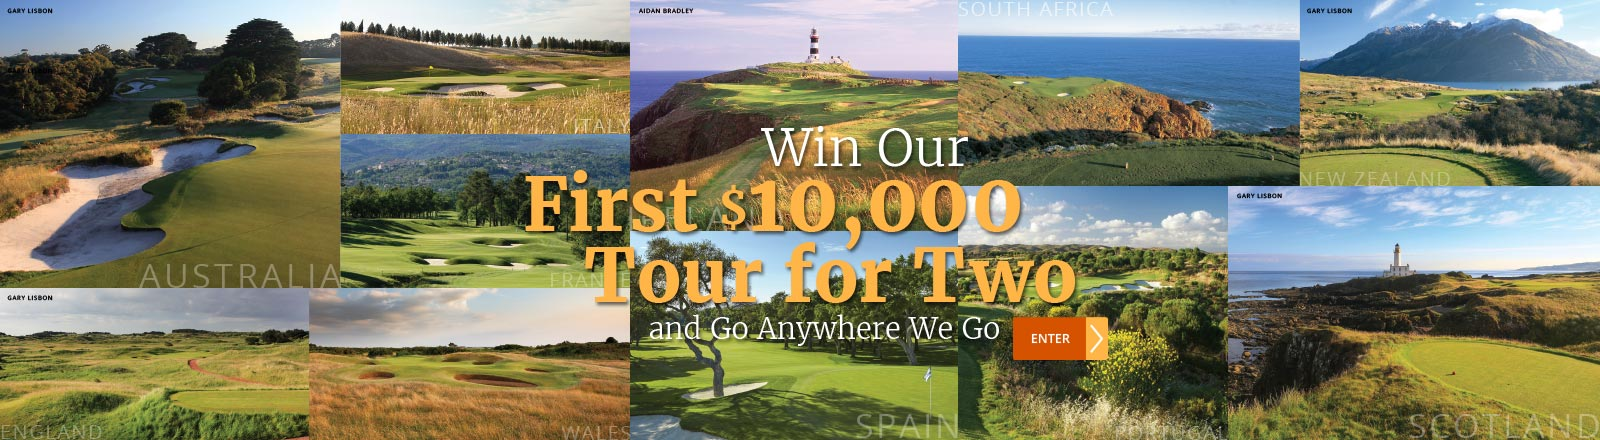 Win Our First $10,000 Tour for Two